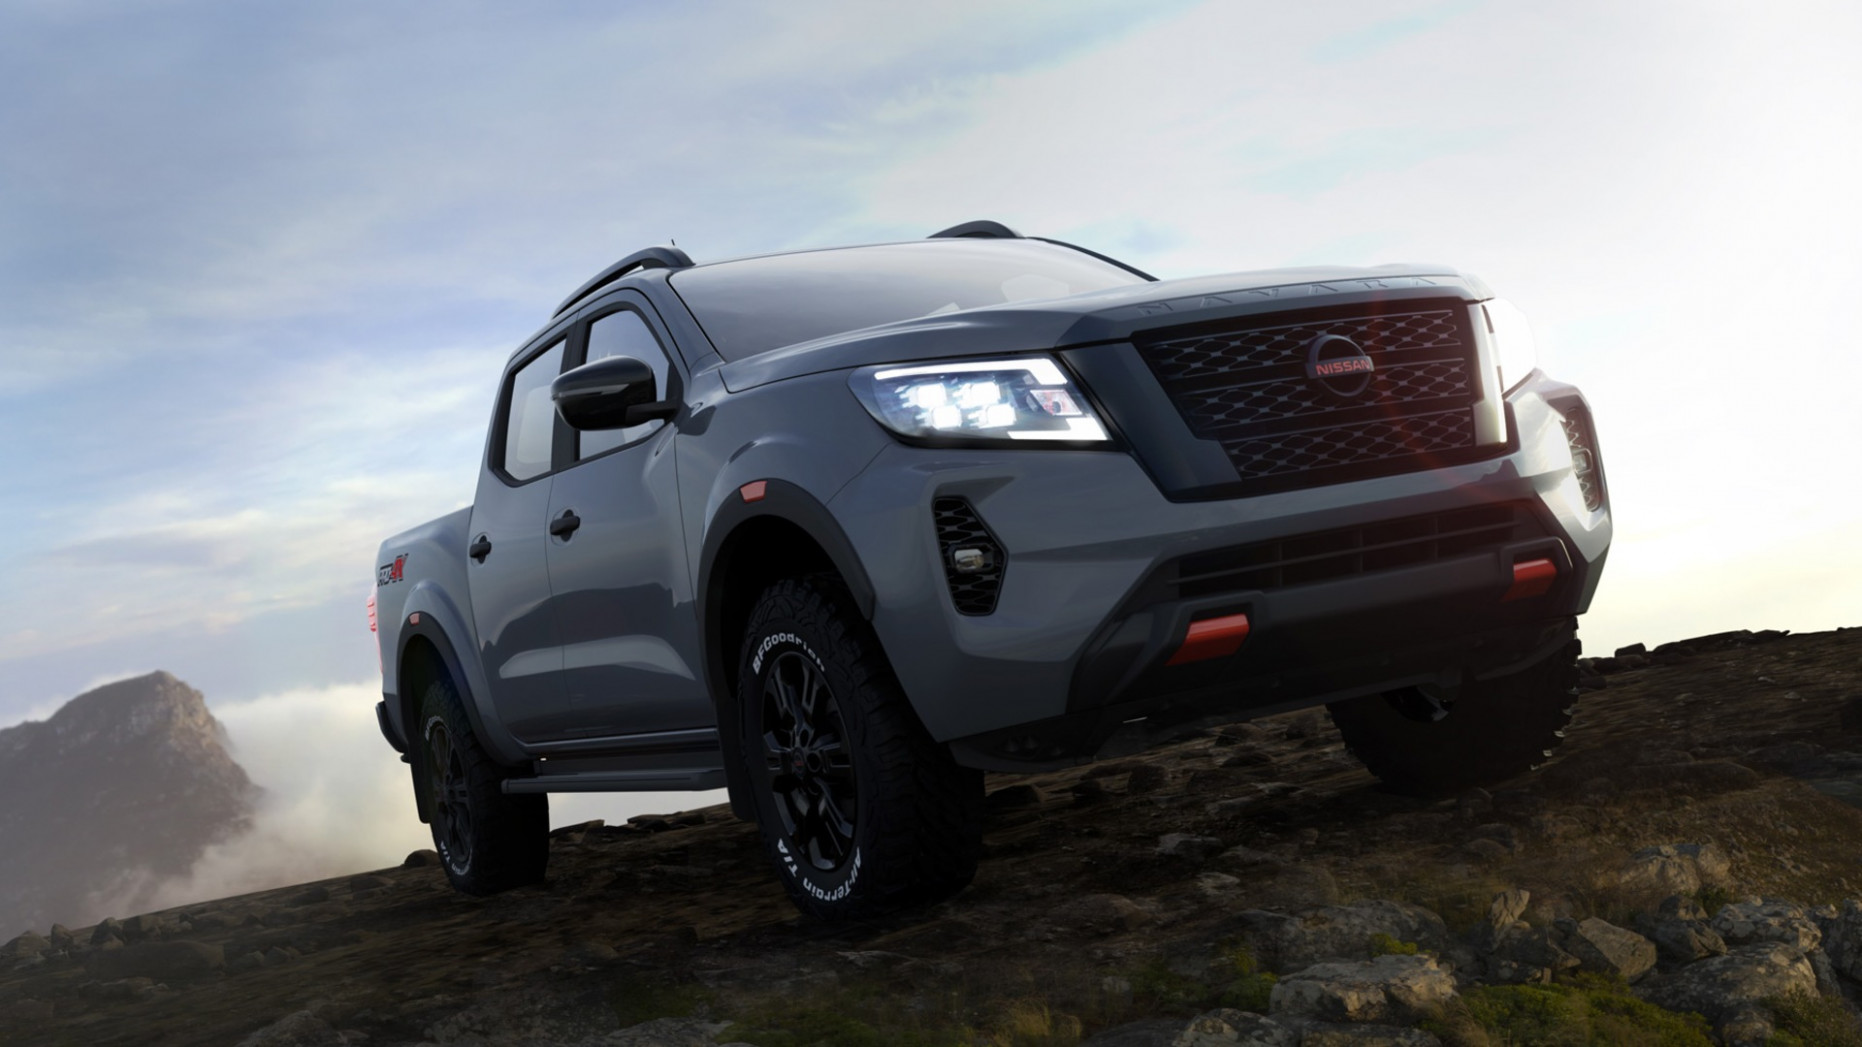 Redesign and Concept 2022 Nissan Navara Uk